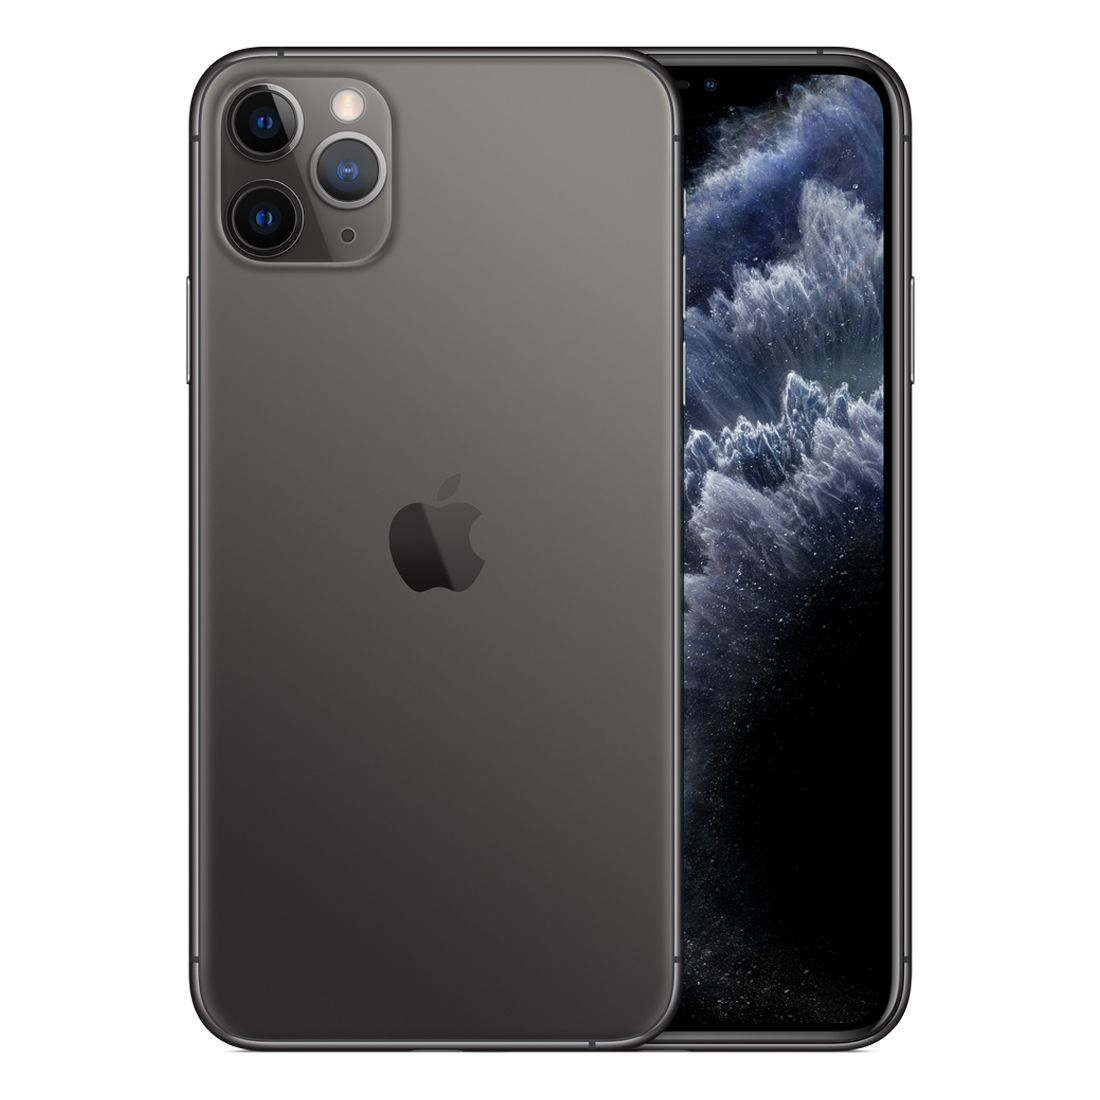 [Open Box - As New] Apple iPhone 11 Pro Max 512GB - Space Grey